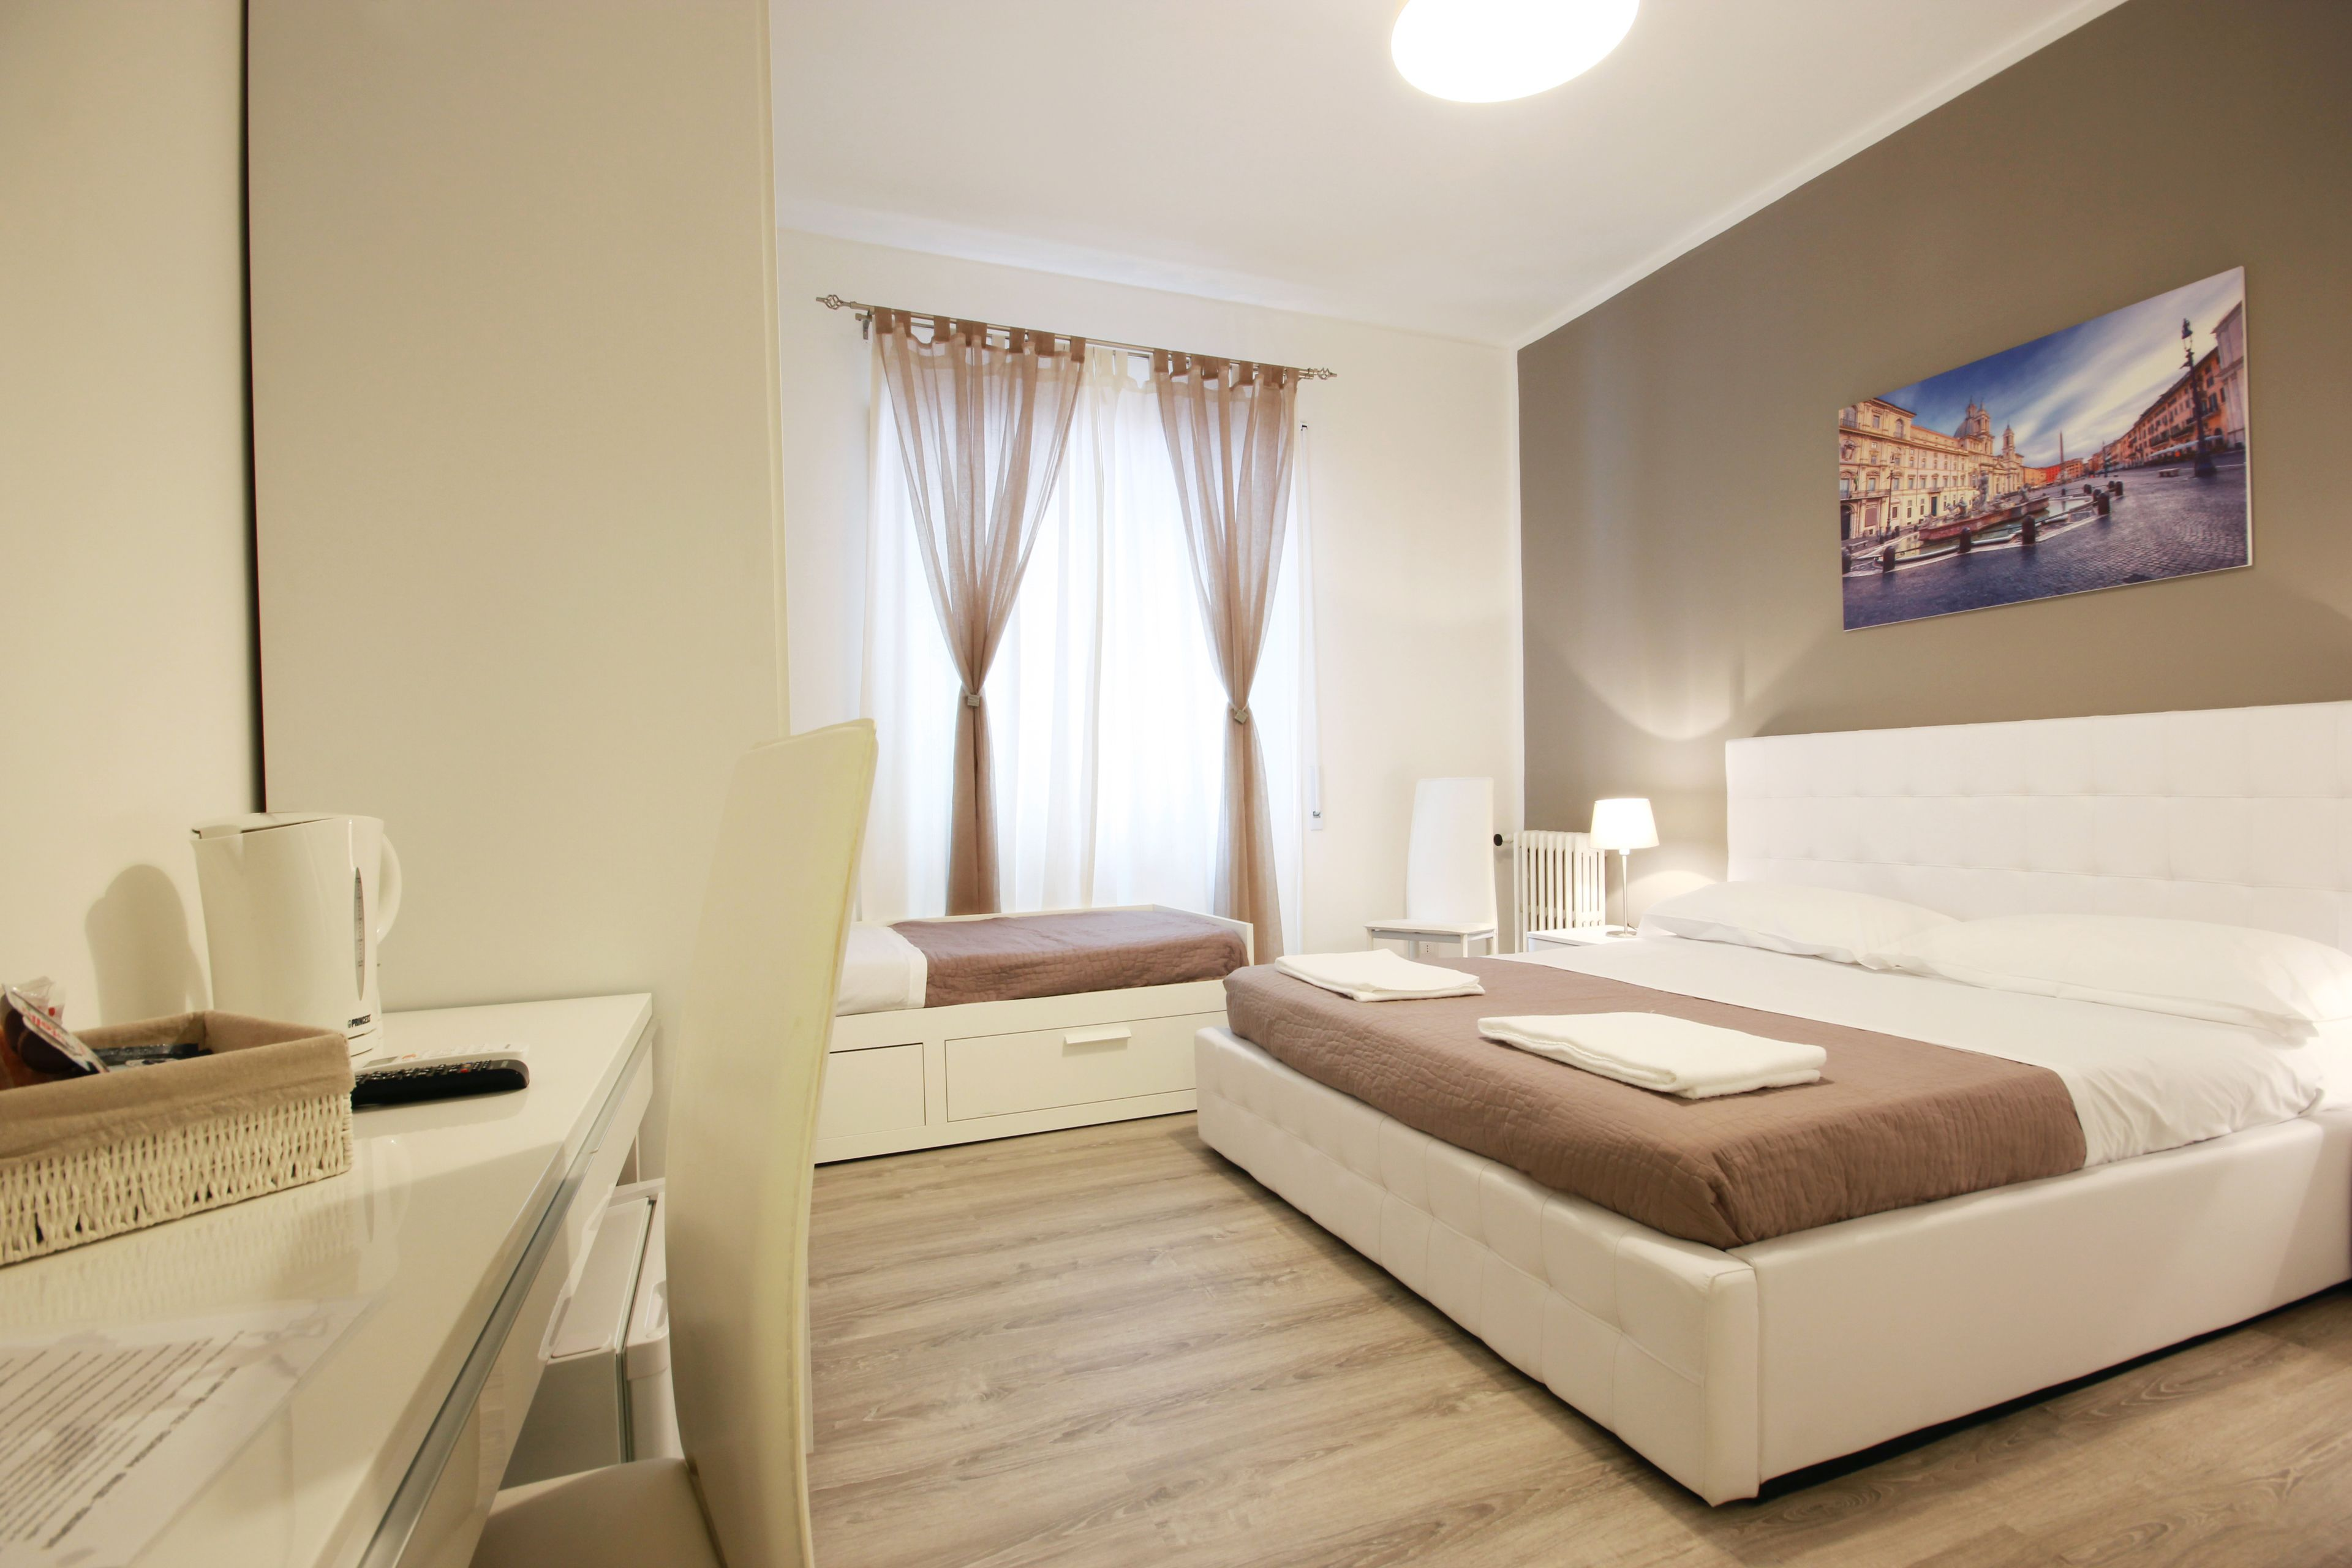 Le Piazze Di Roma Bed And Breakfast